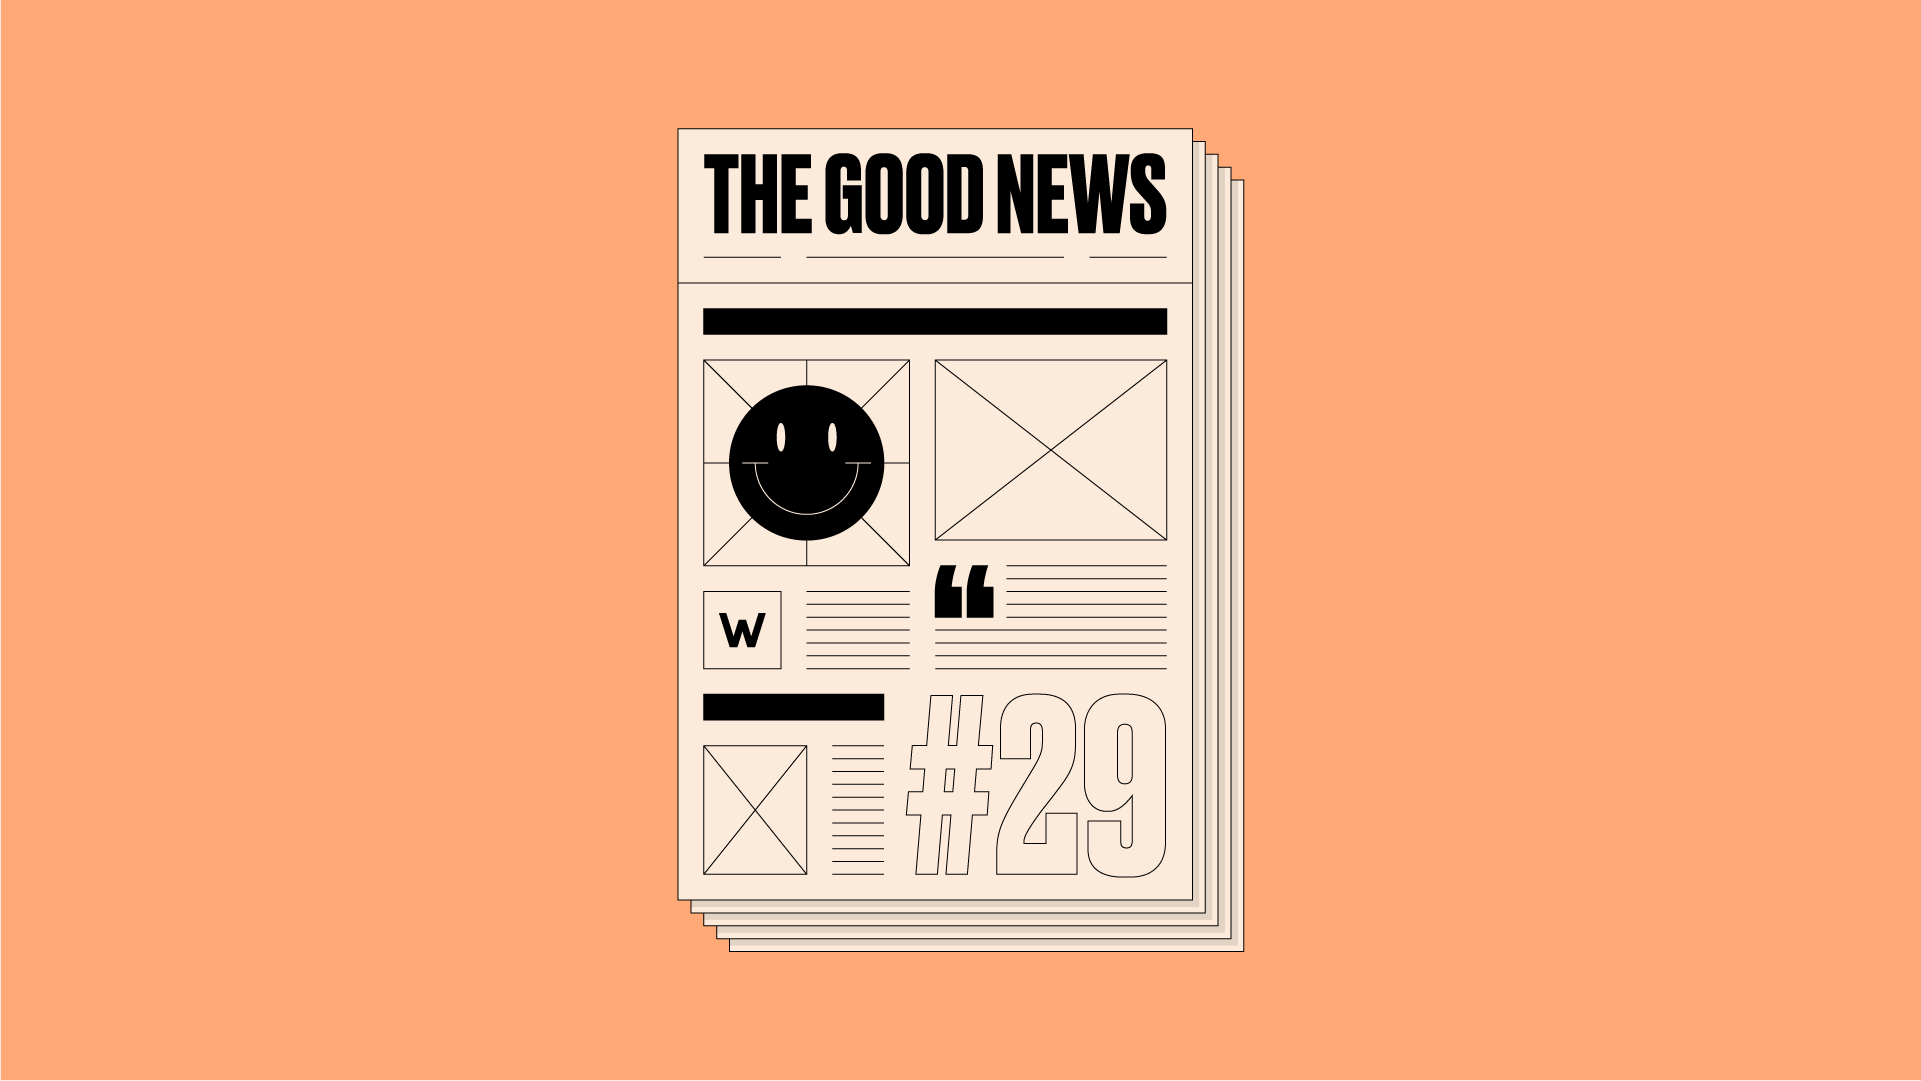 Newspaper front page with 'The Good News #29' written on it, on an orange background